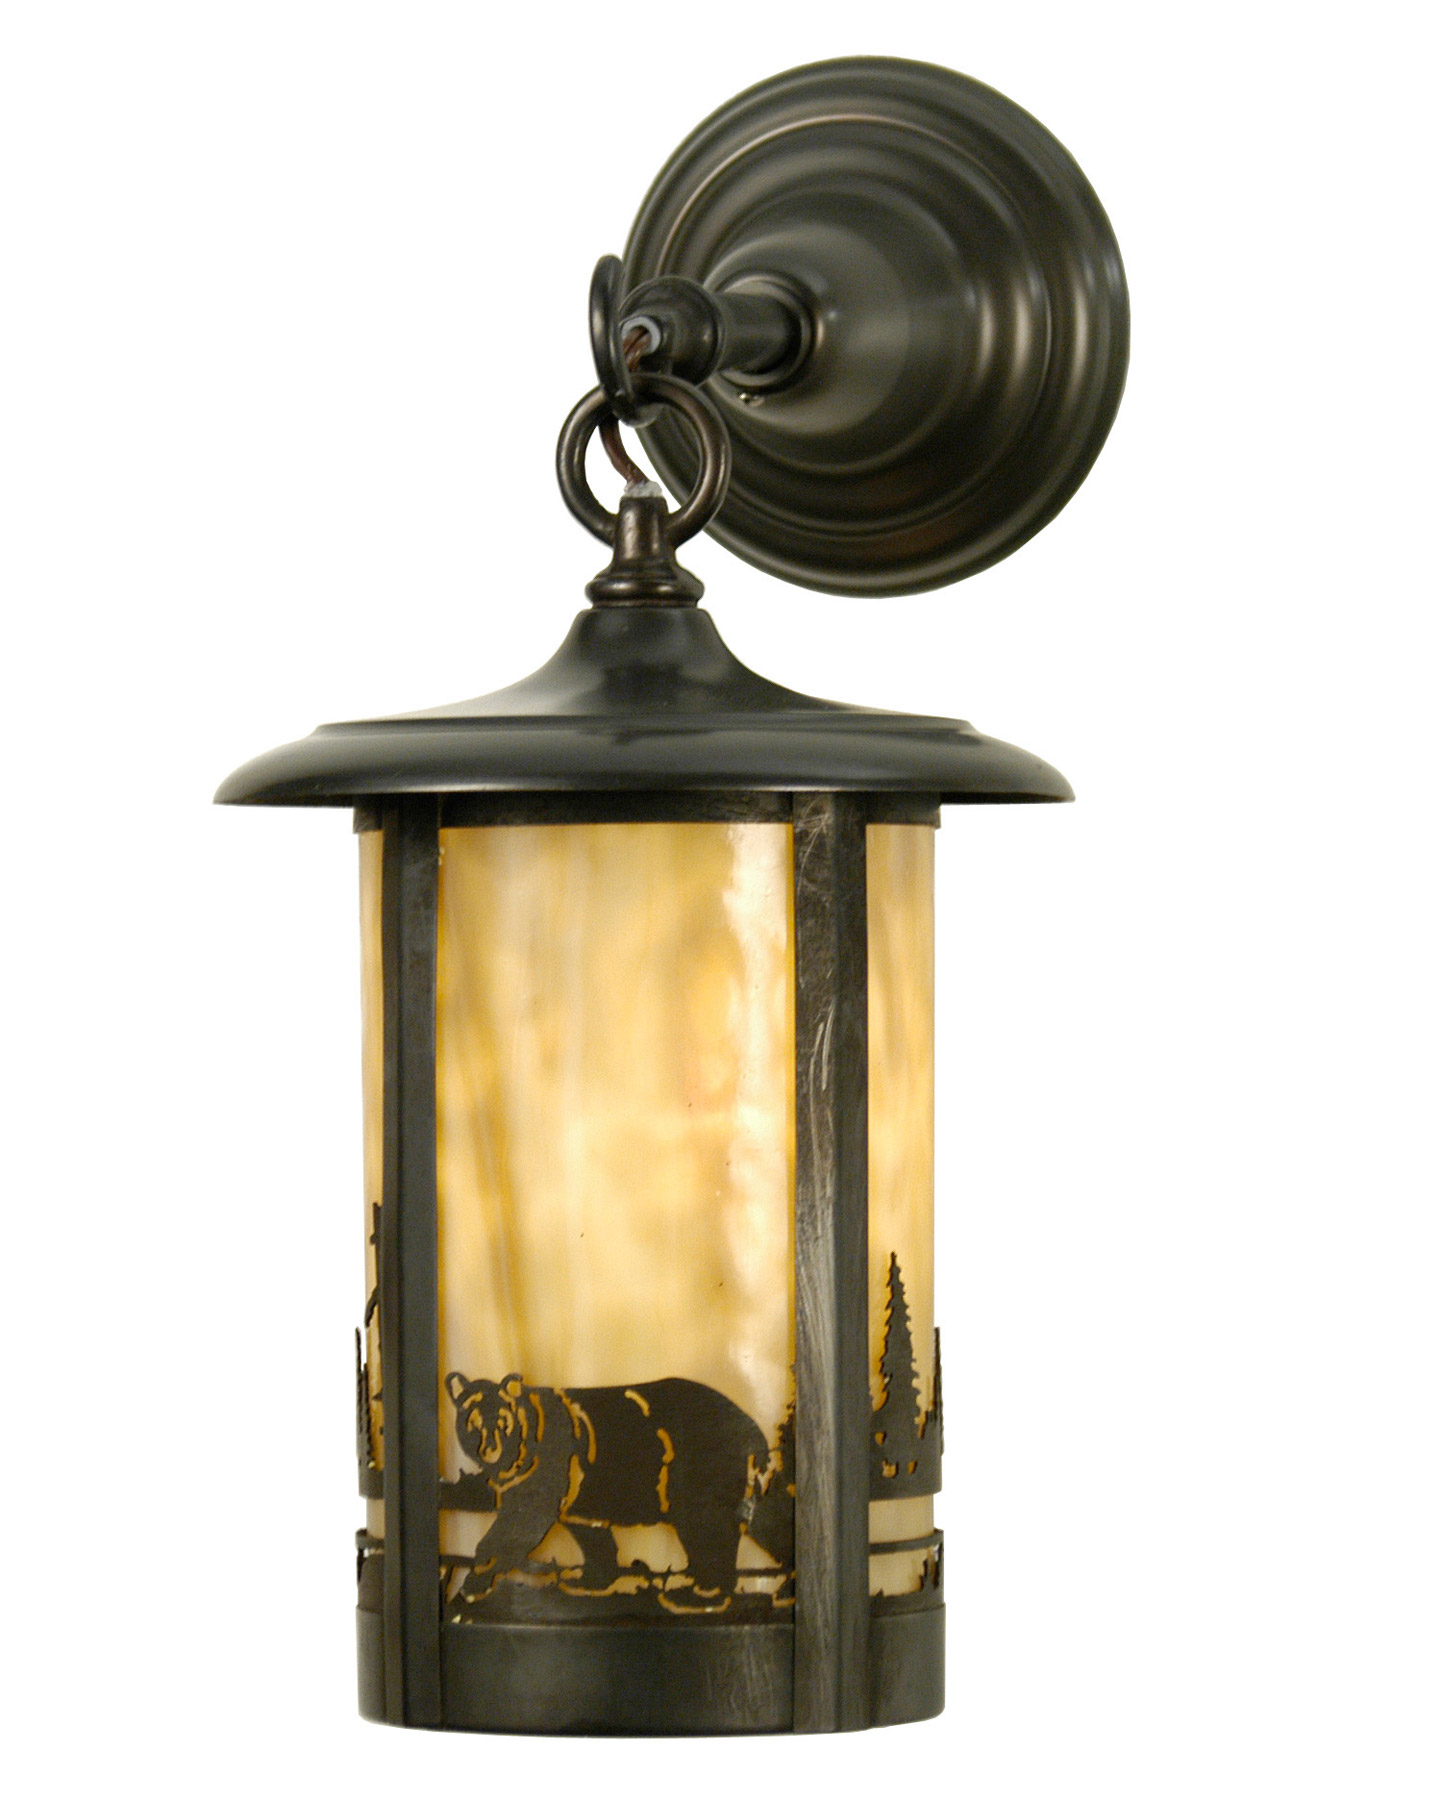 Meyda 28785 Fulton Bear Creek Hanging Wall Sconce